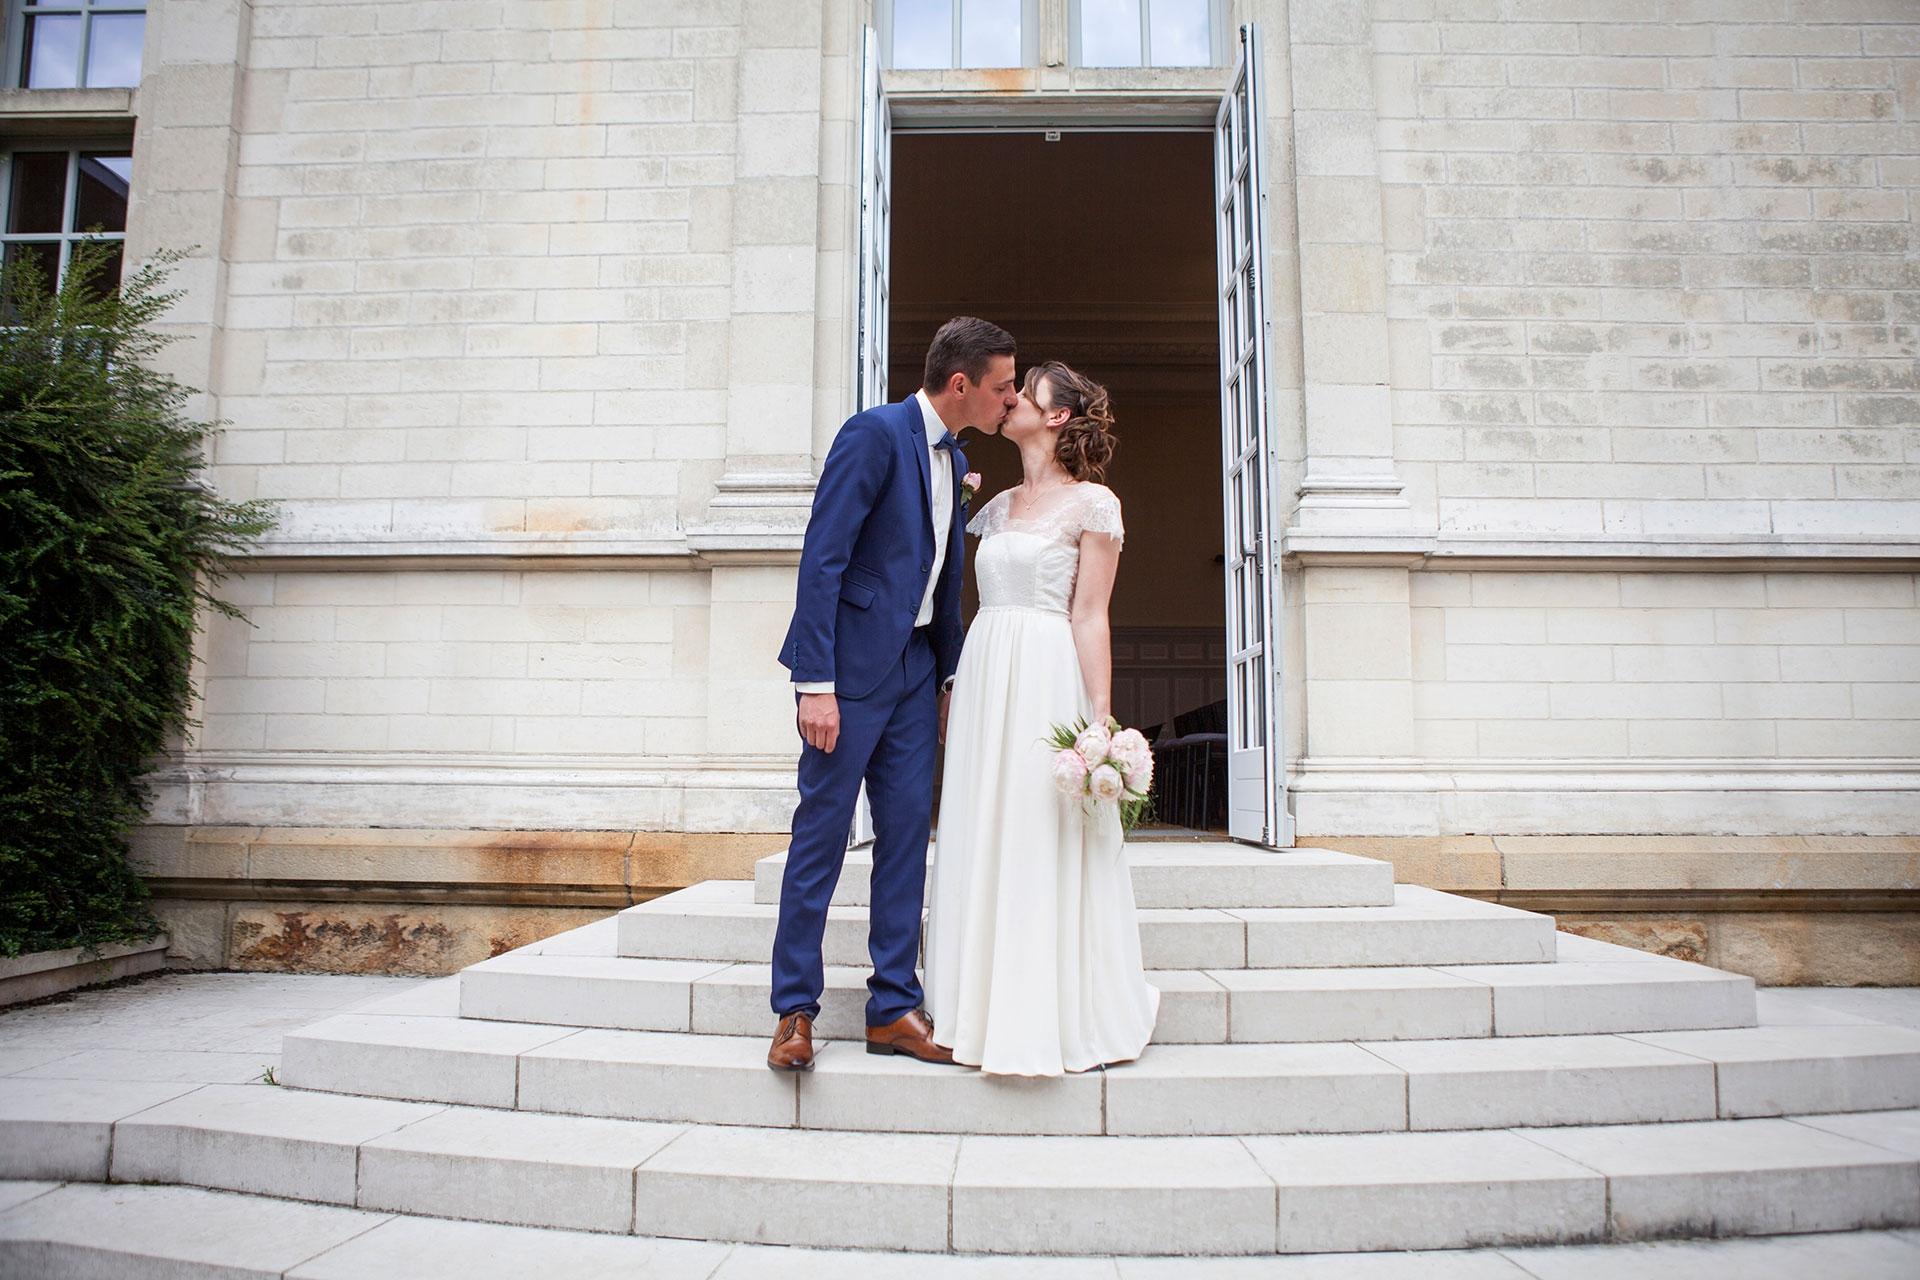 particuliers-evenements-mariages-oui-clementine&alexandre-28